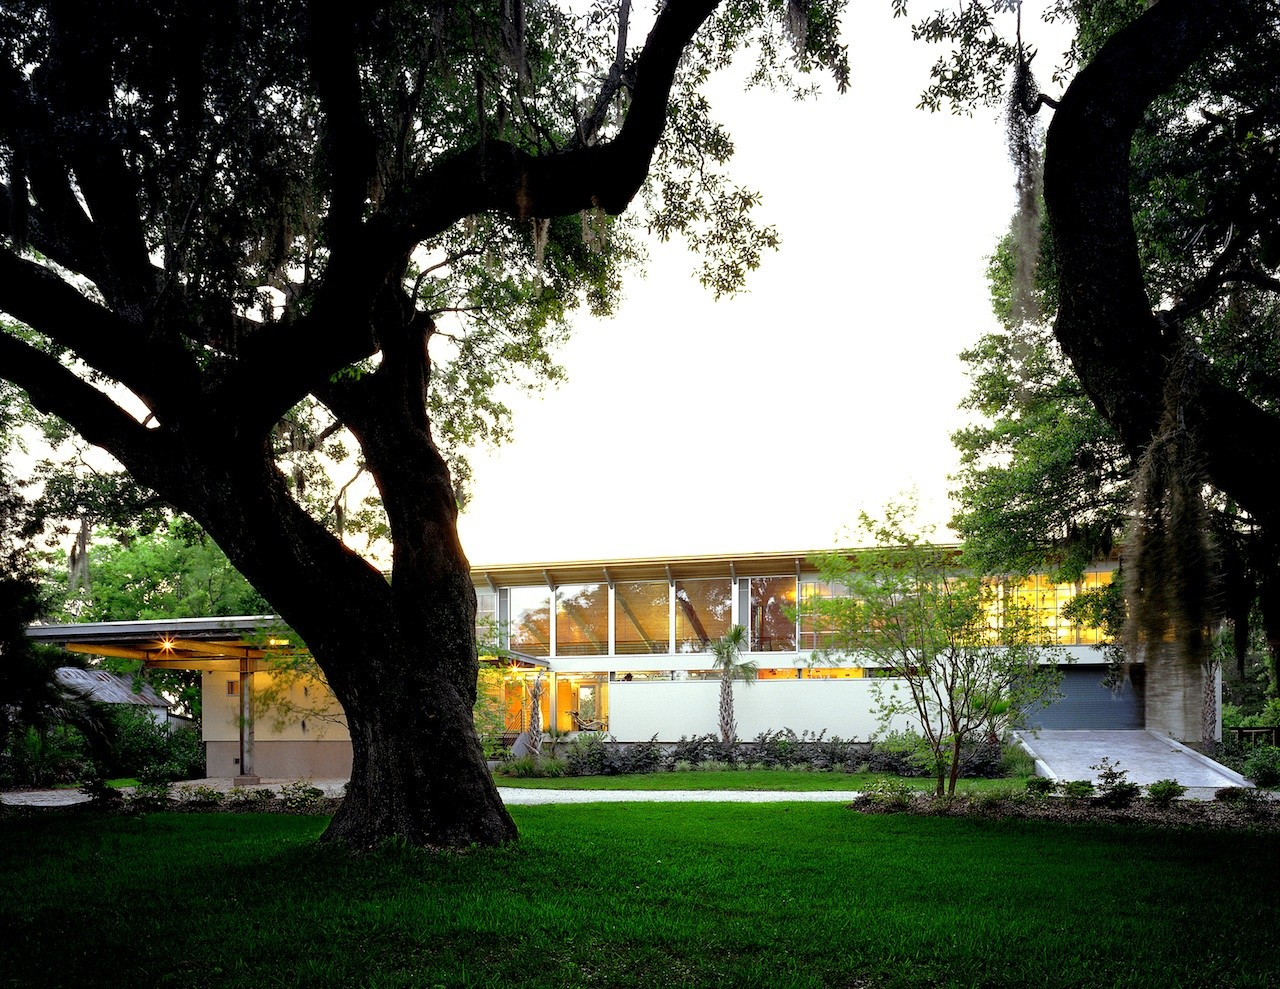 Residencia País Bajo / Frank Harmon Architect, © Richard Leo Johnson, Atlantic Archives, Inc.